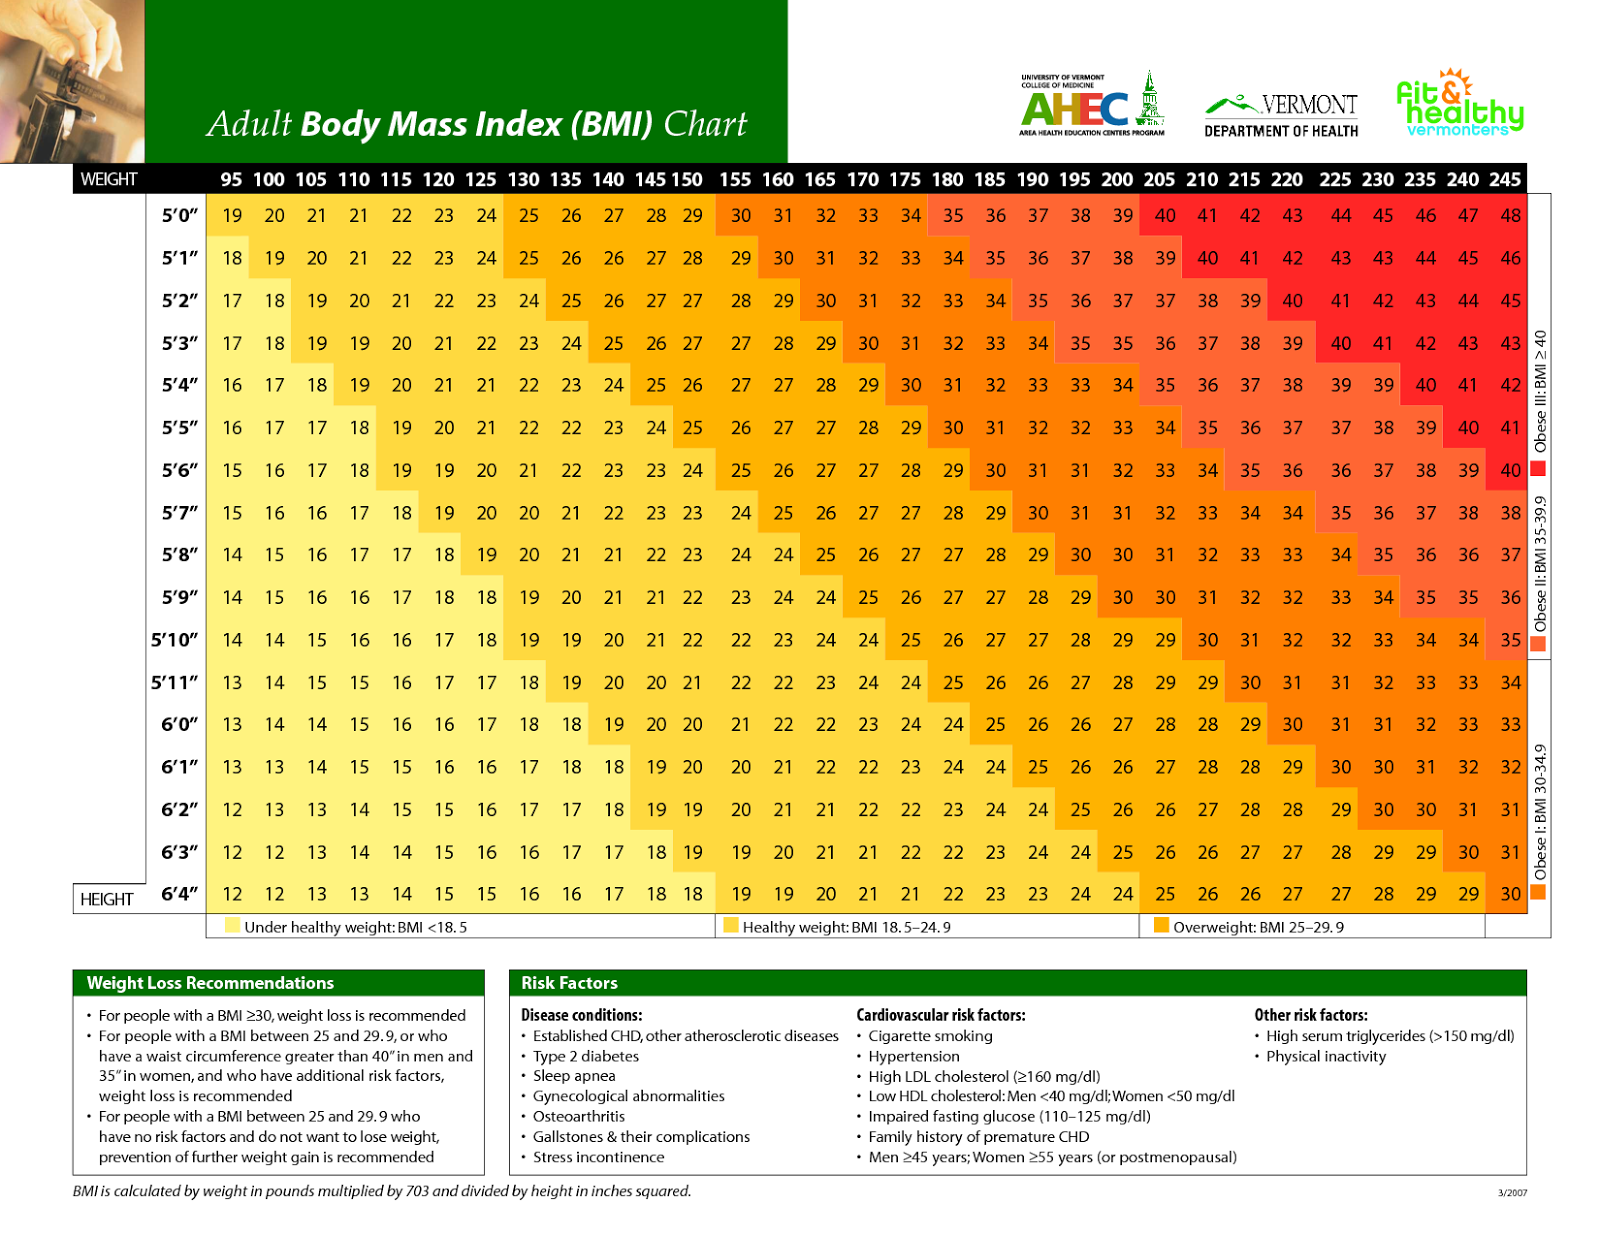 Becoming healthier january 2013 bmi chart for medical scales nvjuhfo Gallery